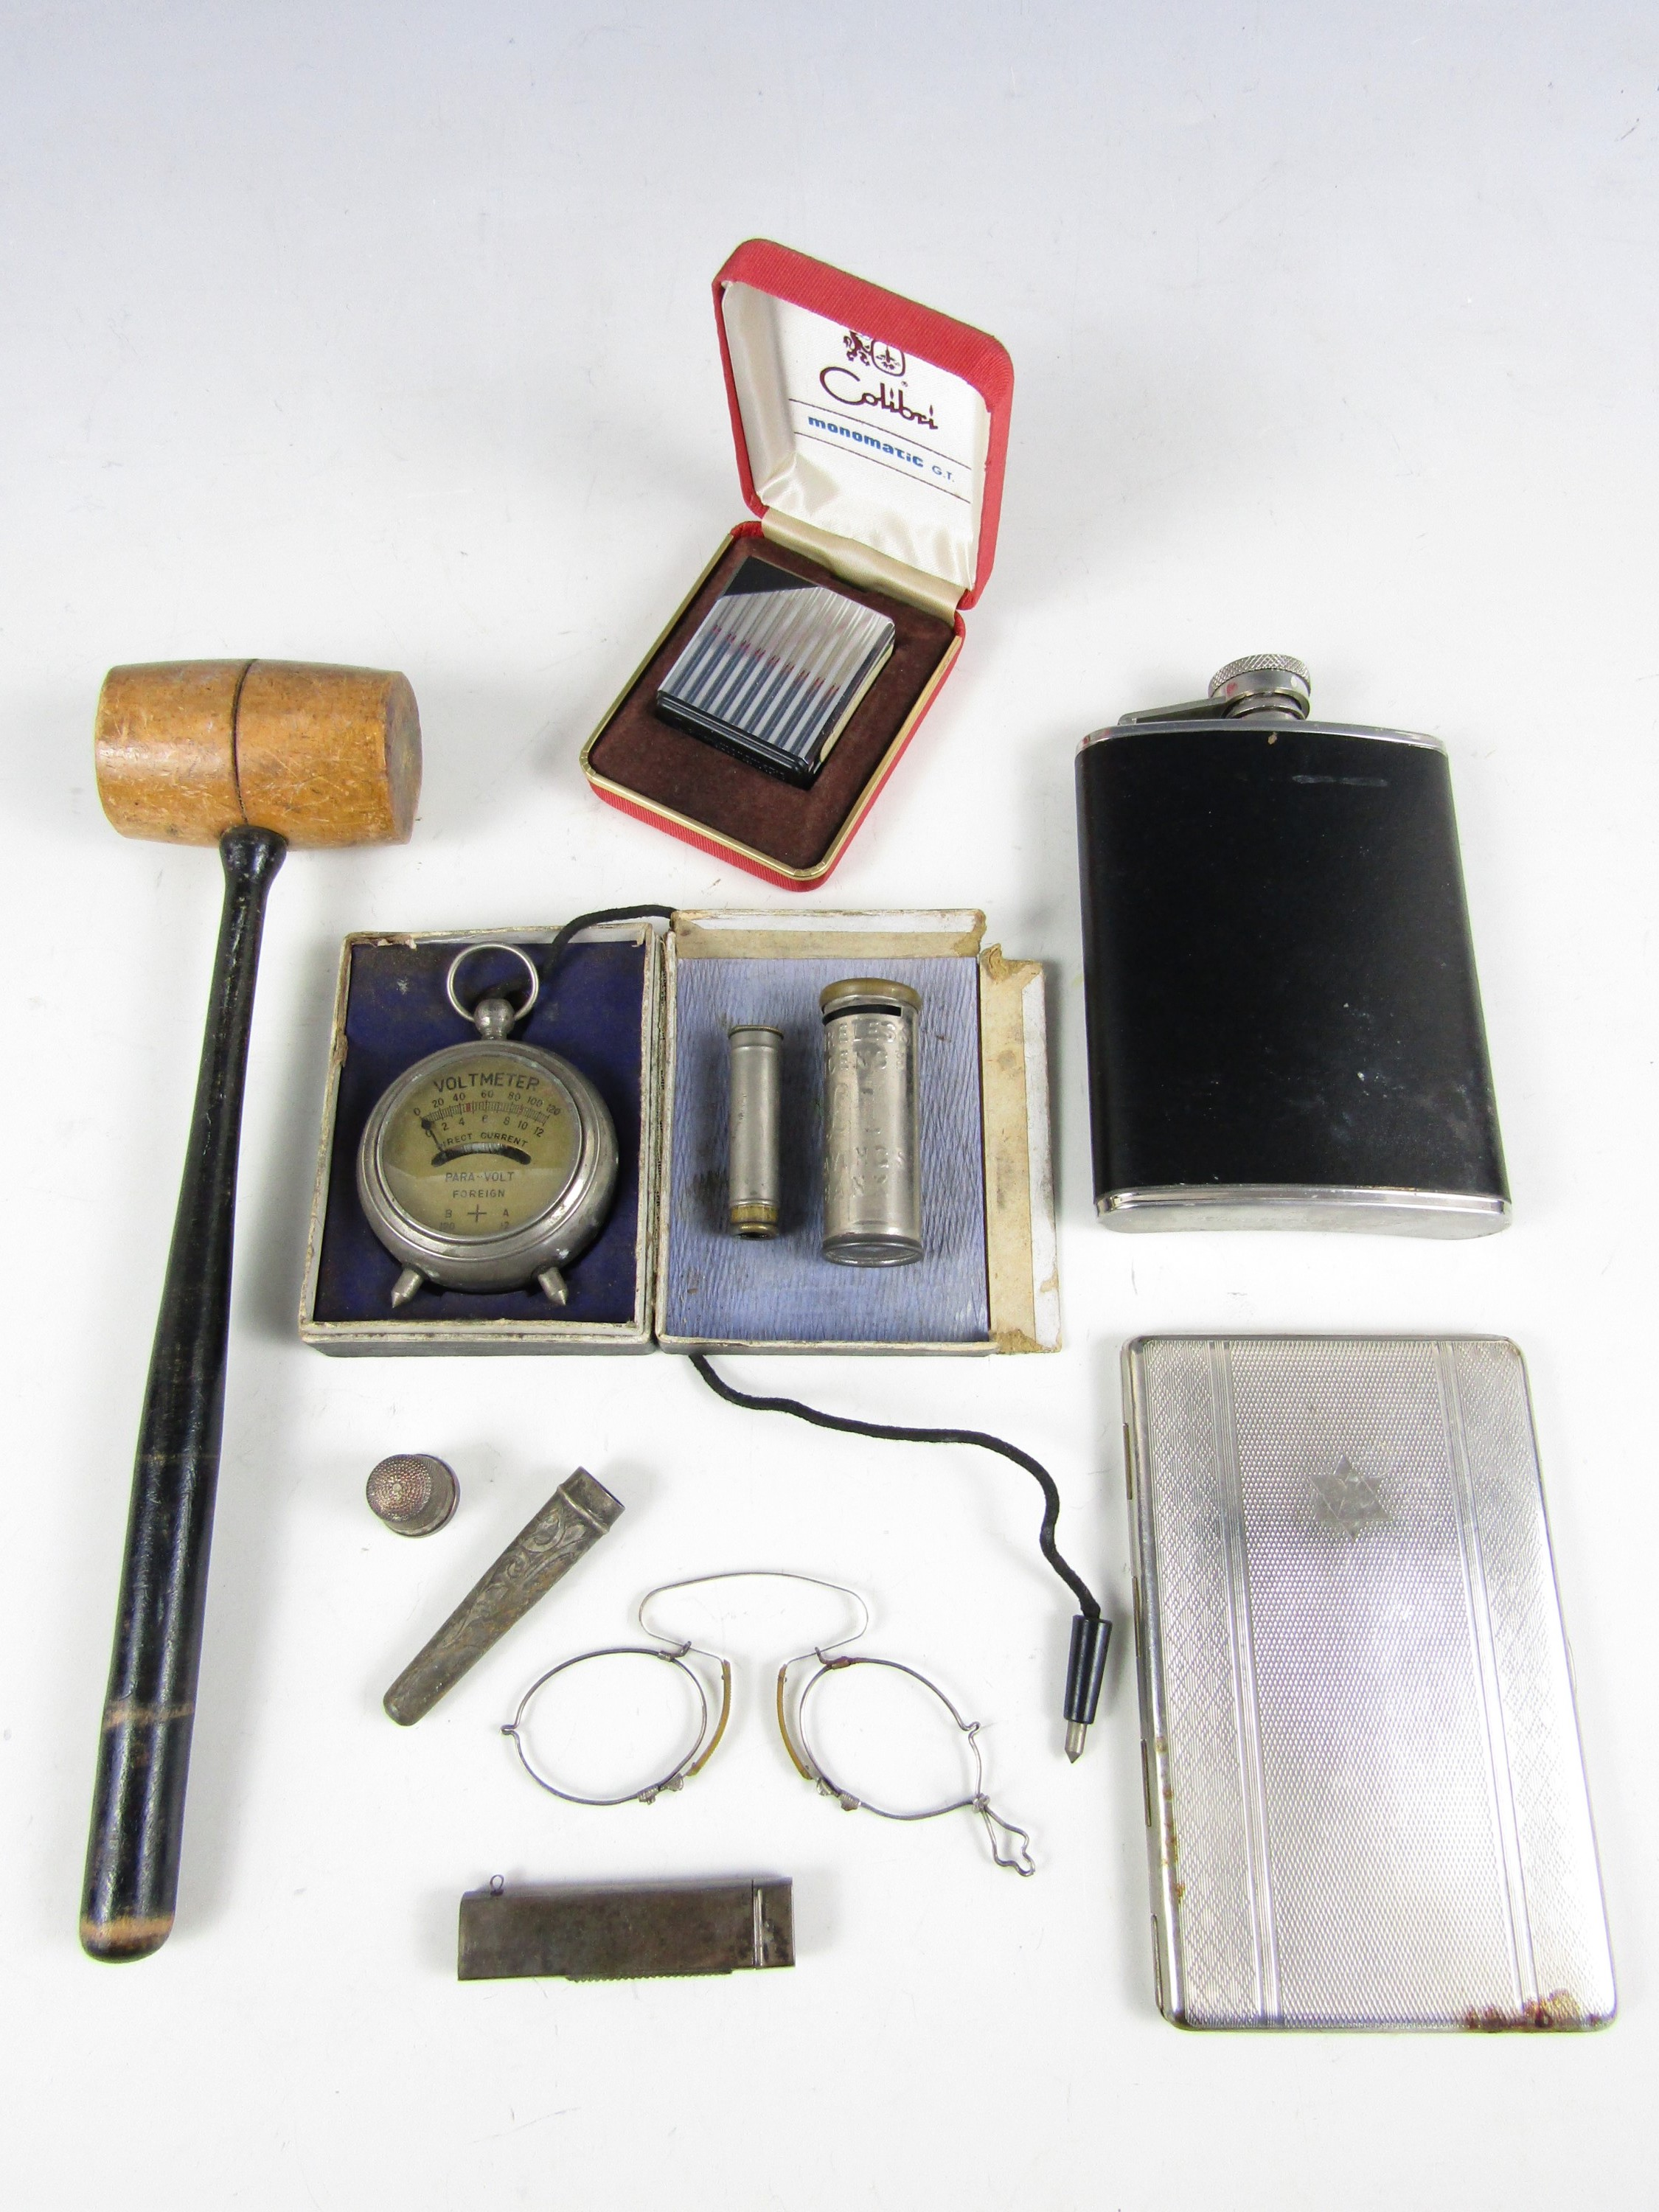 Lot 16 - Sundry collectors' items including a turned wooden gavel, a cased Colibri Monomatic lighter, a